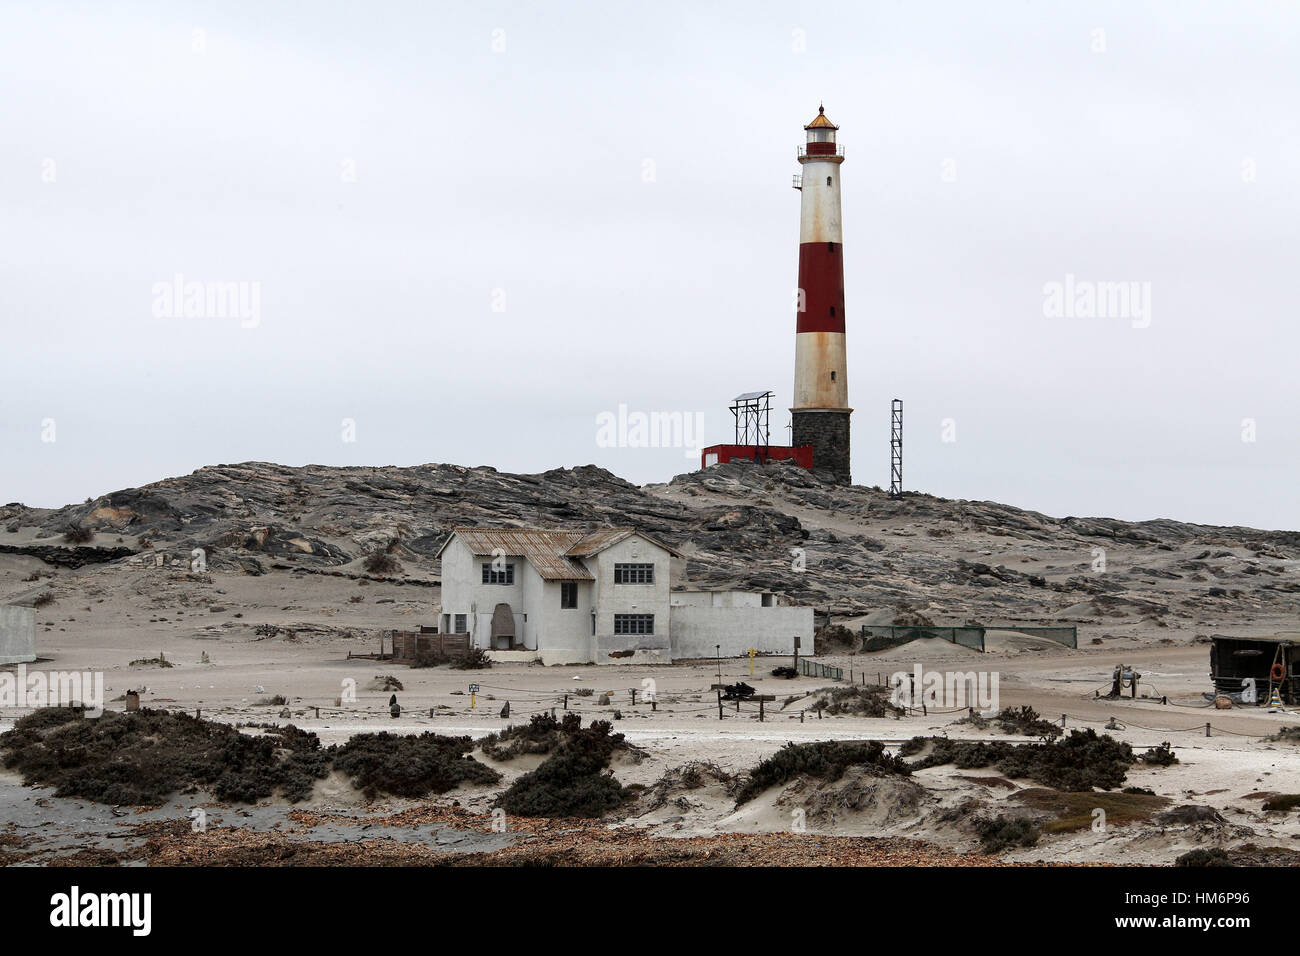 Lighthouse at Diaz Point on the Luderitz Peninsula in Namibia - Stock Image